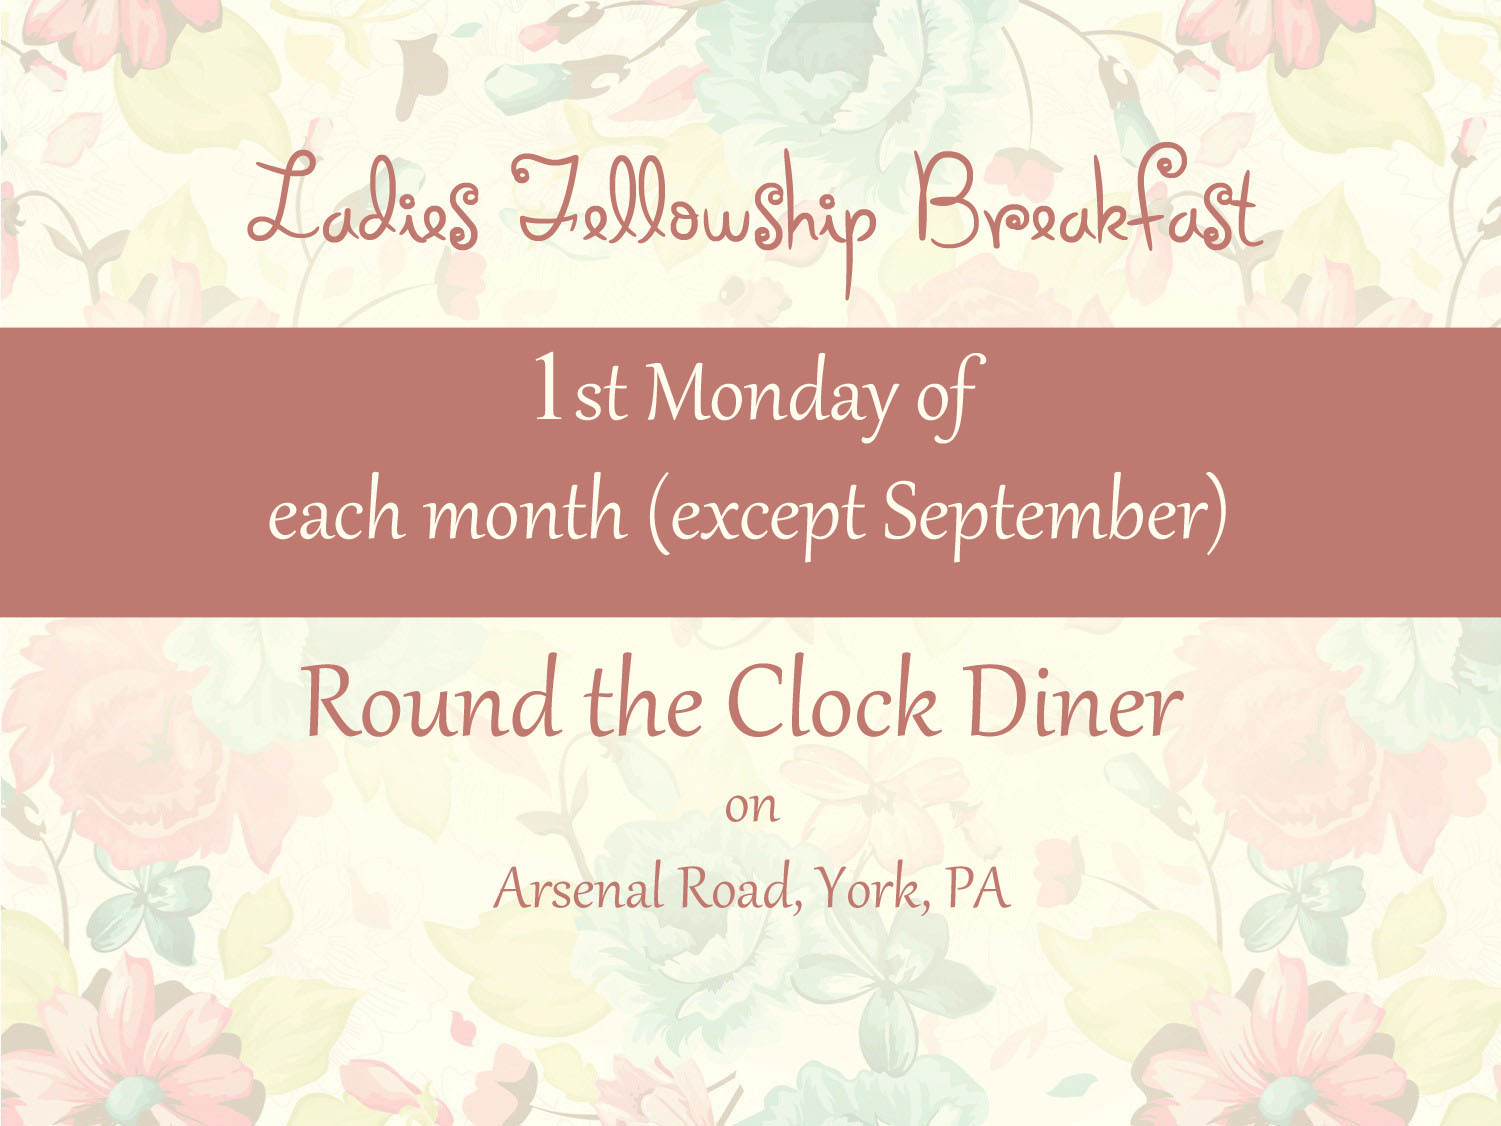 The first Monday of the month at 9:30am at Round the Clock Diner, on Arsenal Road